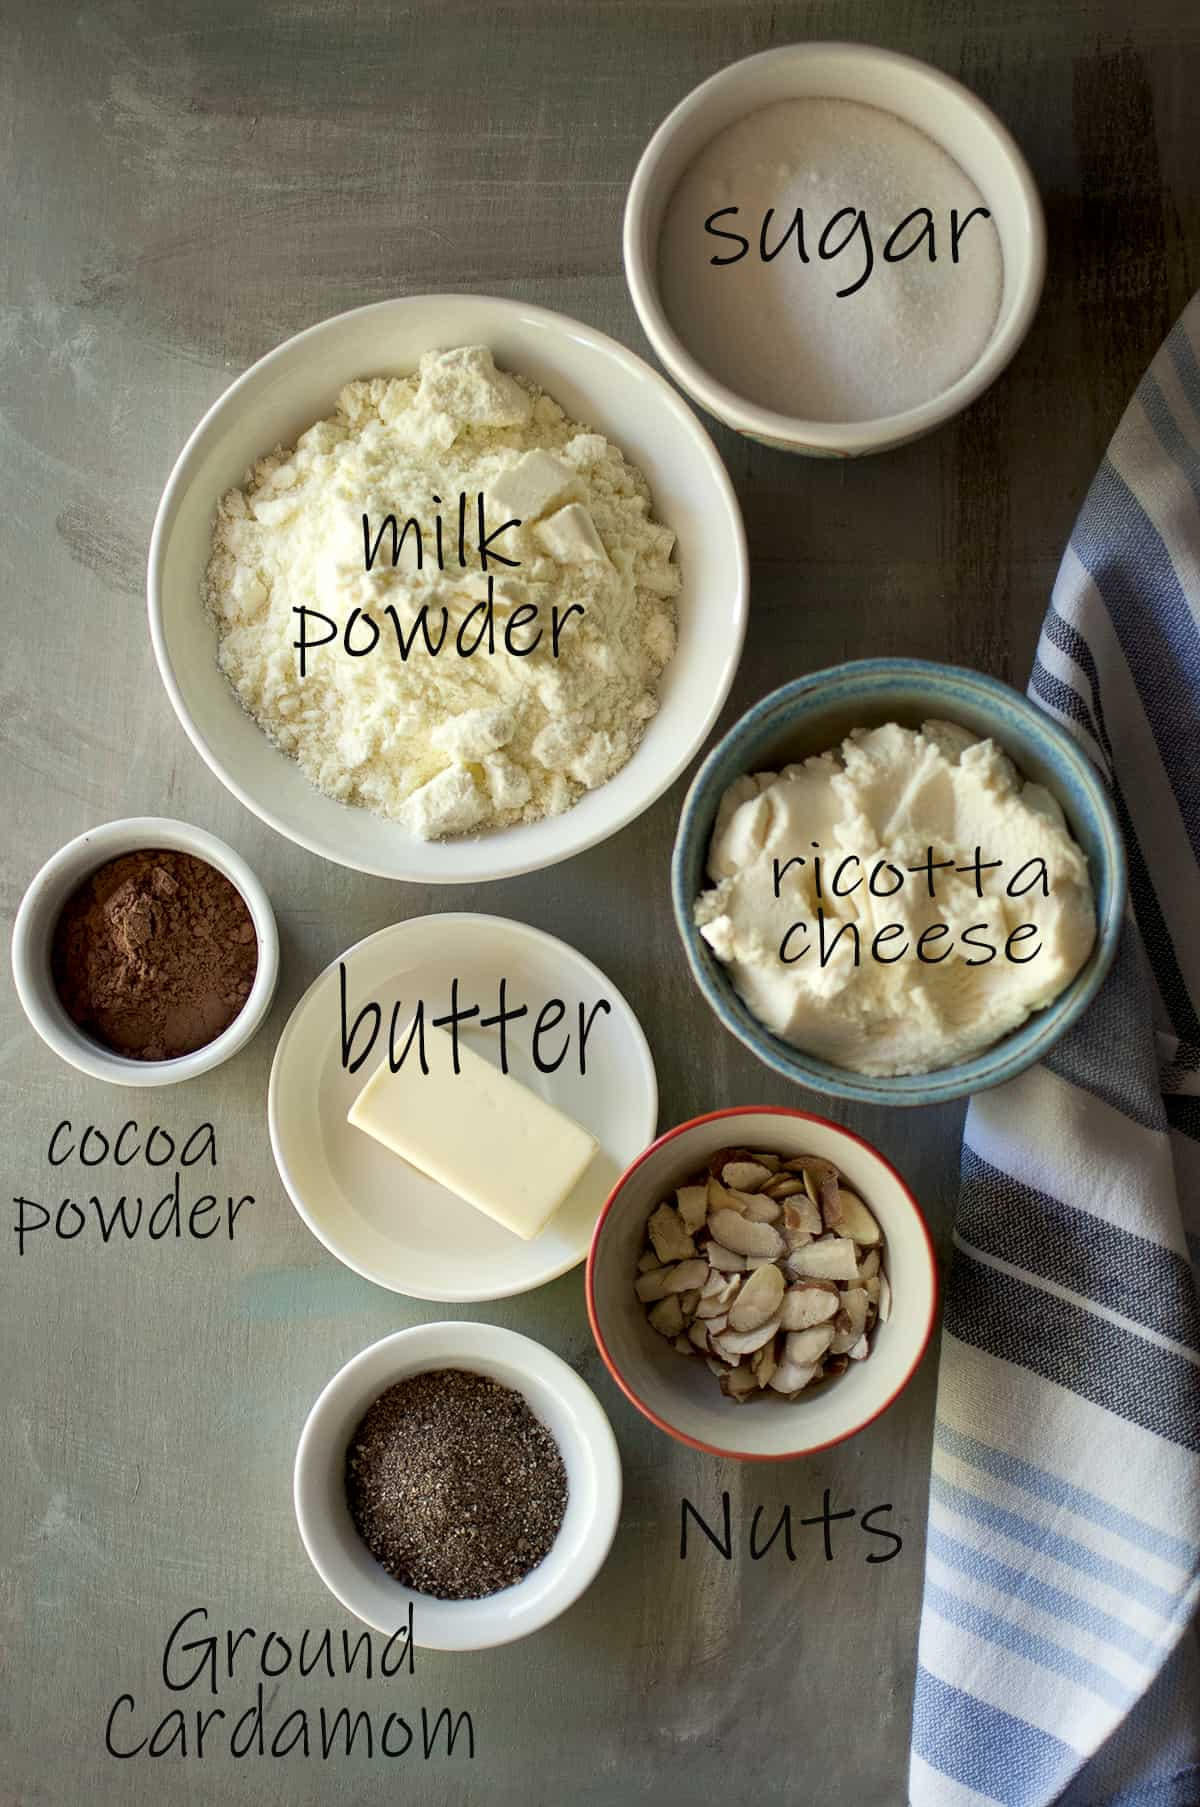 Ingredients needed - sugar, milk powder, ricotta cheese, butter, cocoa powder, unsalted butter, almonds, ground cardamom